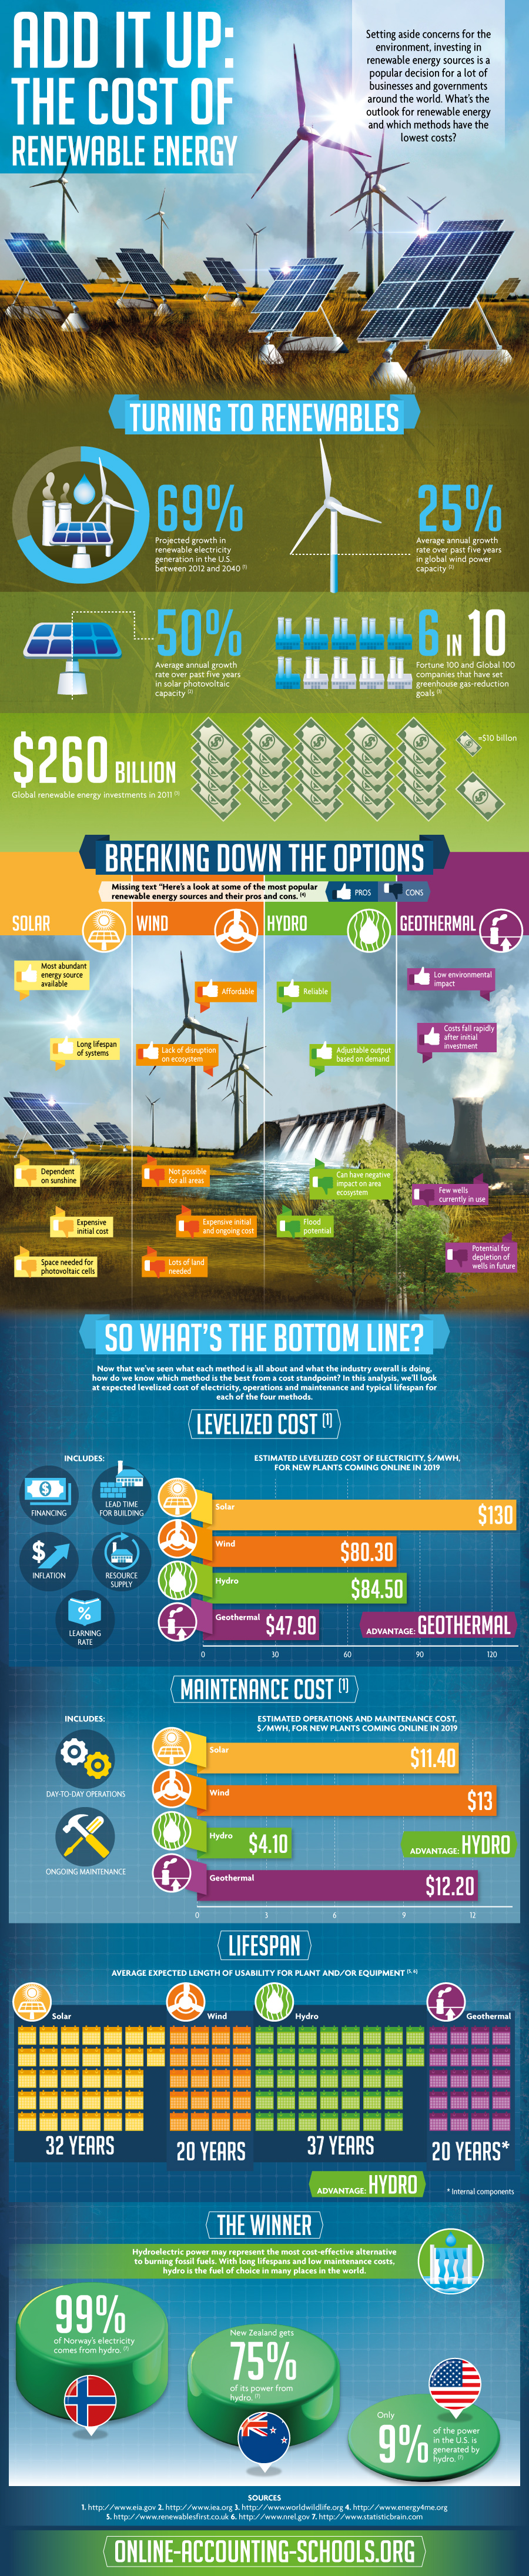 renewable-energy-cost